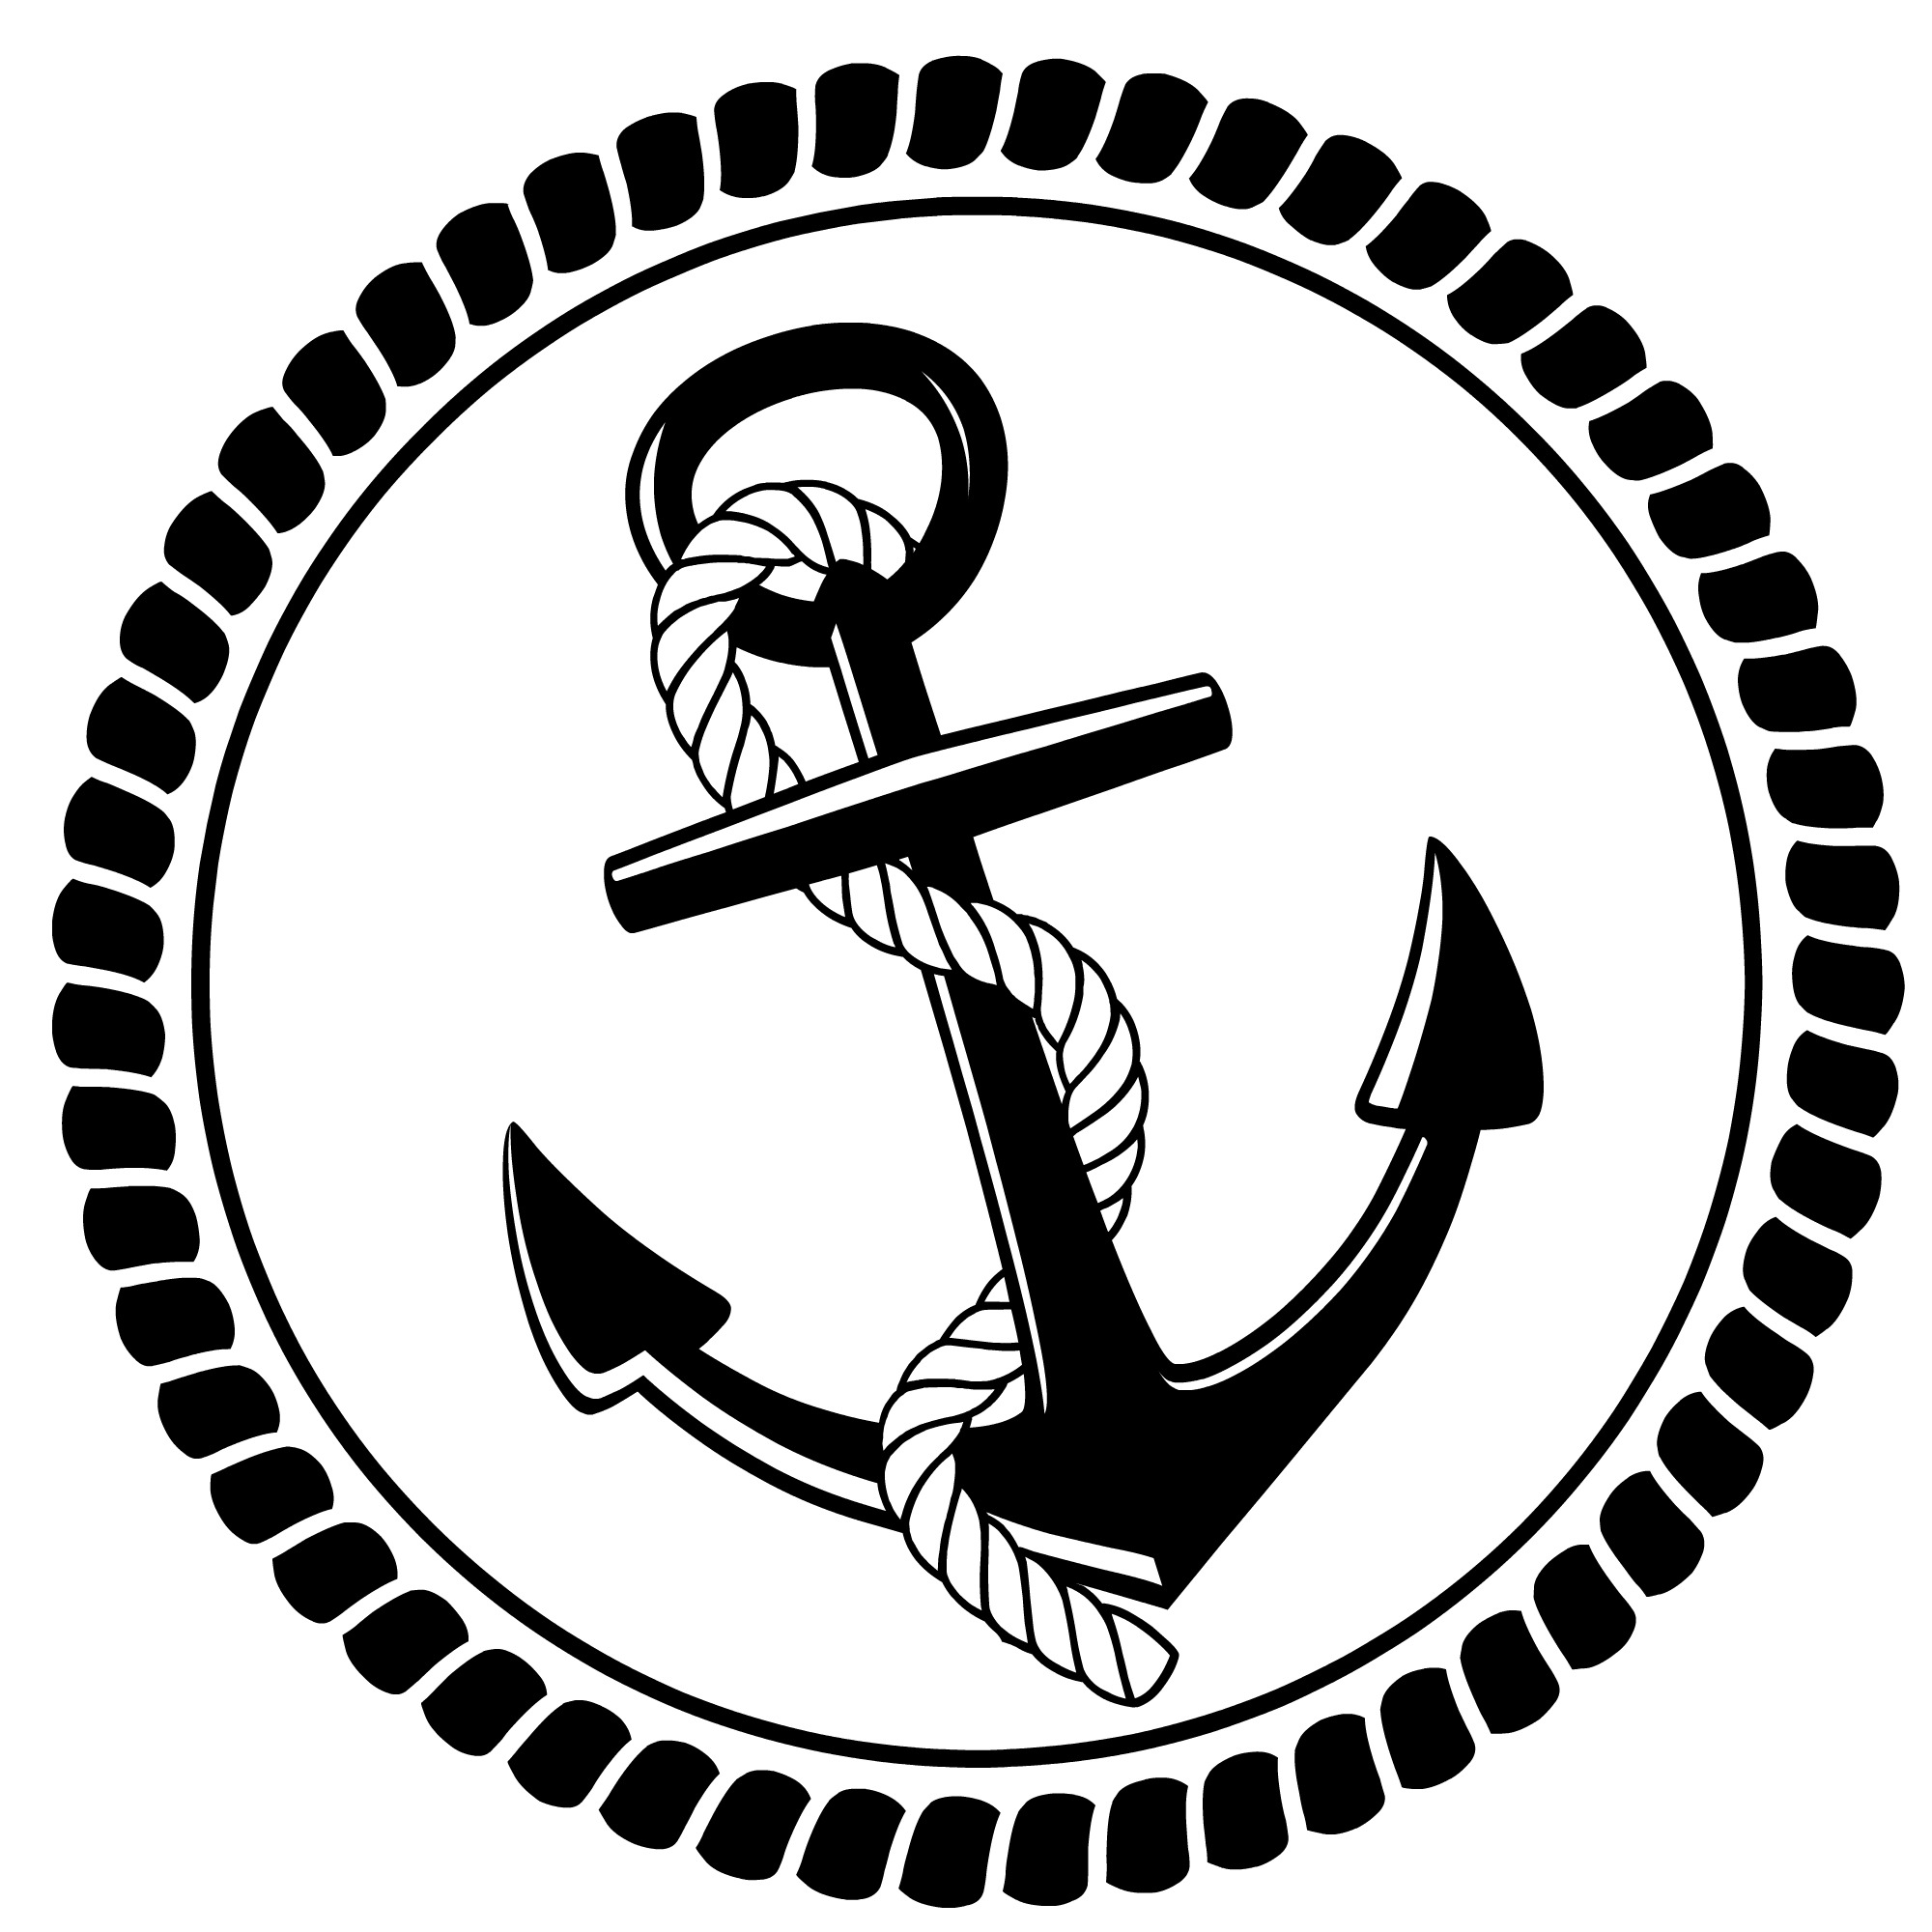 Anchor clipart nautical. Cliparts free download clip